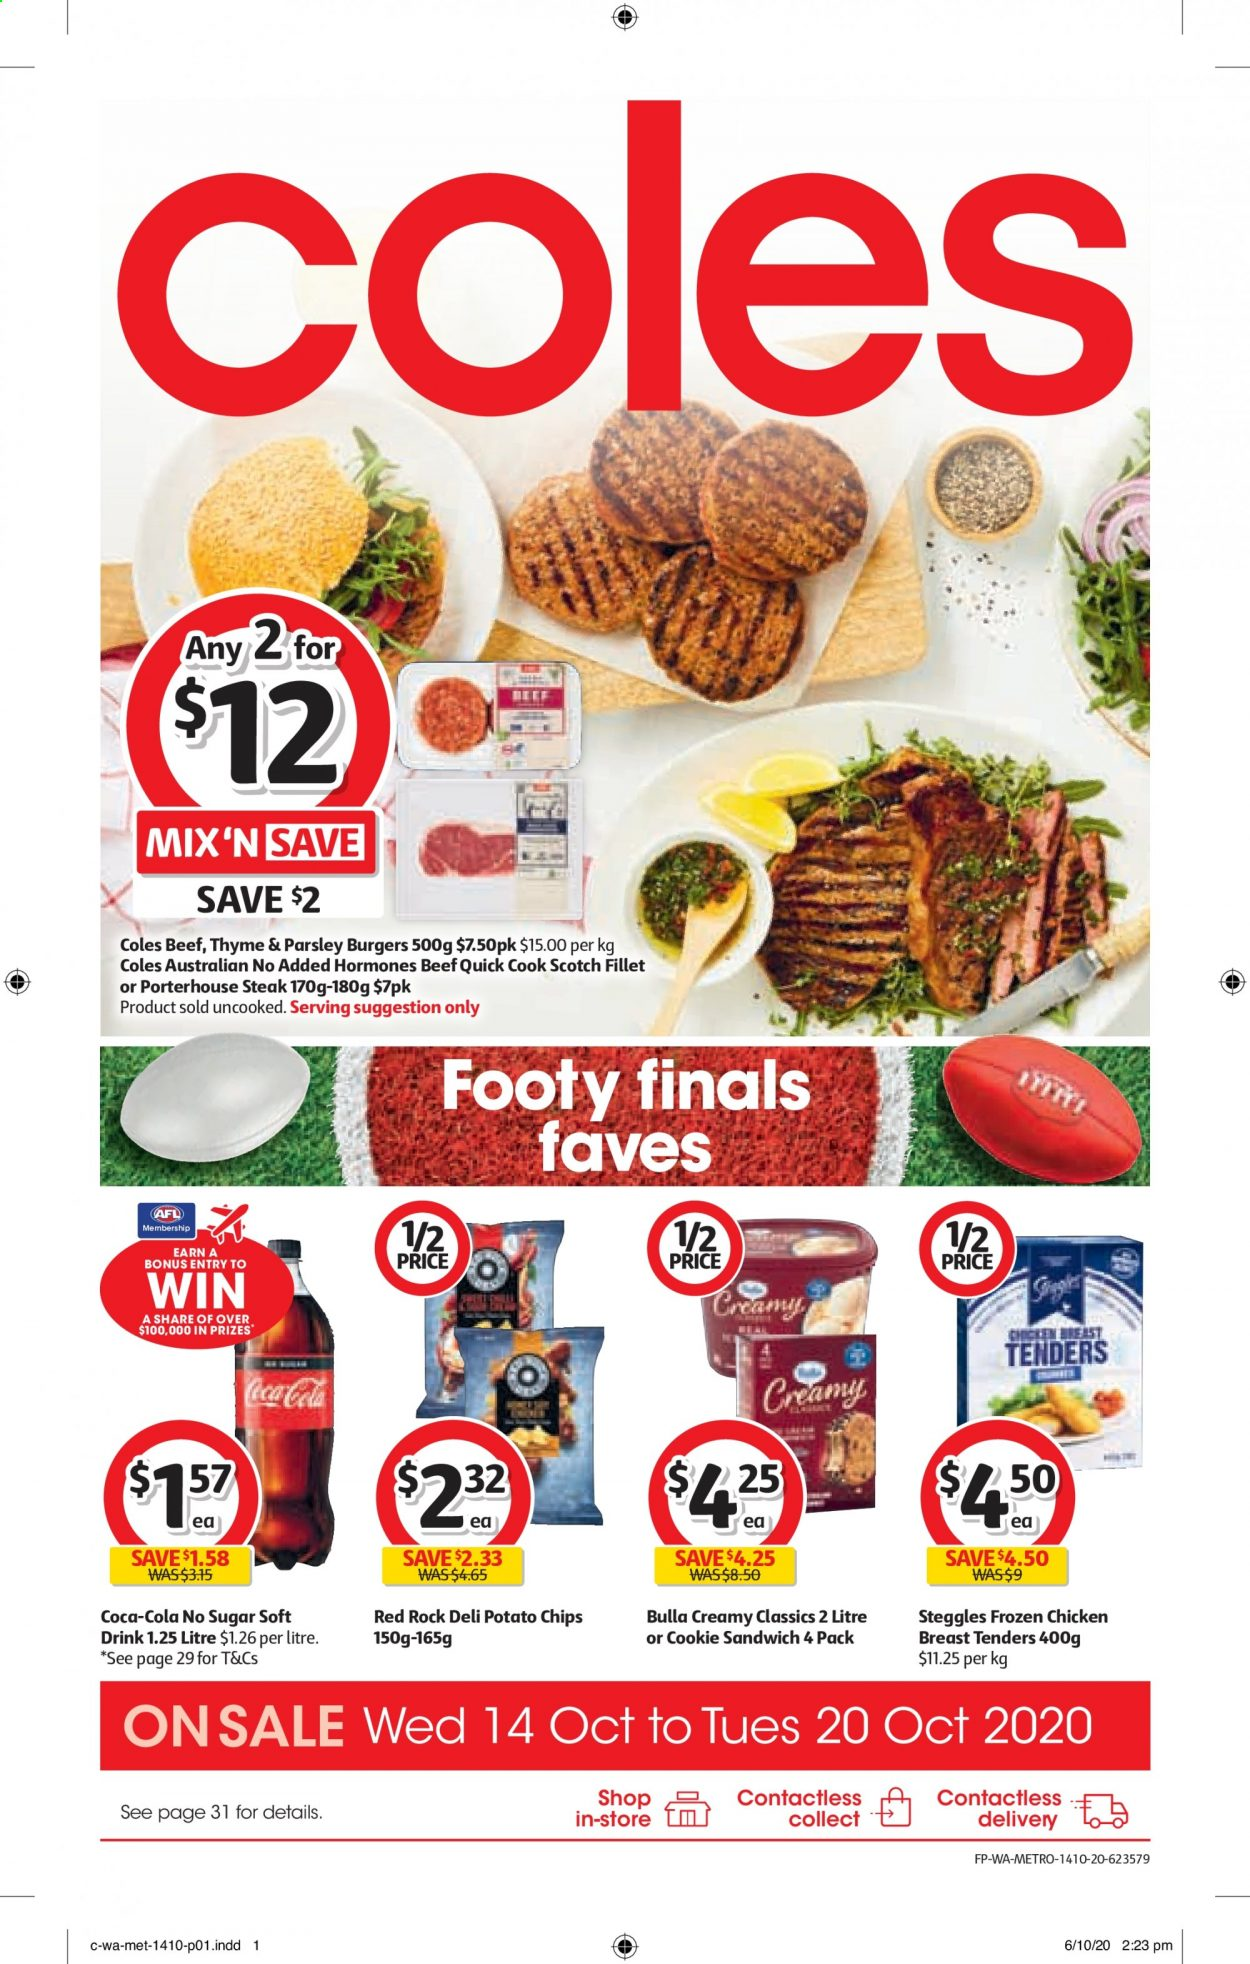 Coles Catalogue - 14.10.2020 - 20.10.2020 - Sales products - beef meat, coca-cola, frozen, sugar, potato chips, potatoes, chicken, parsley, chips, steak, burger, sandwich, drink, chicken breast, soft drink. Page 1.